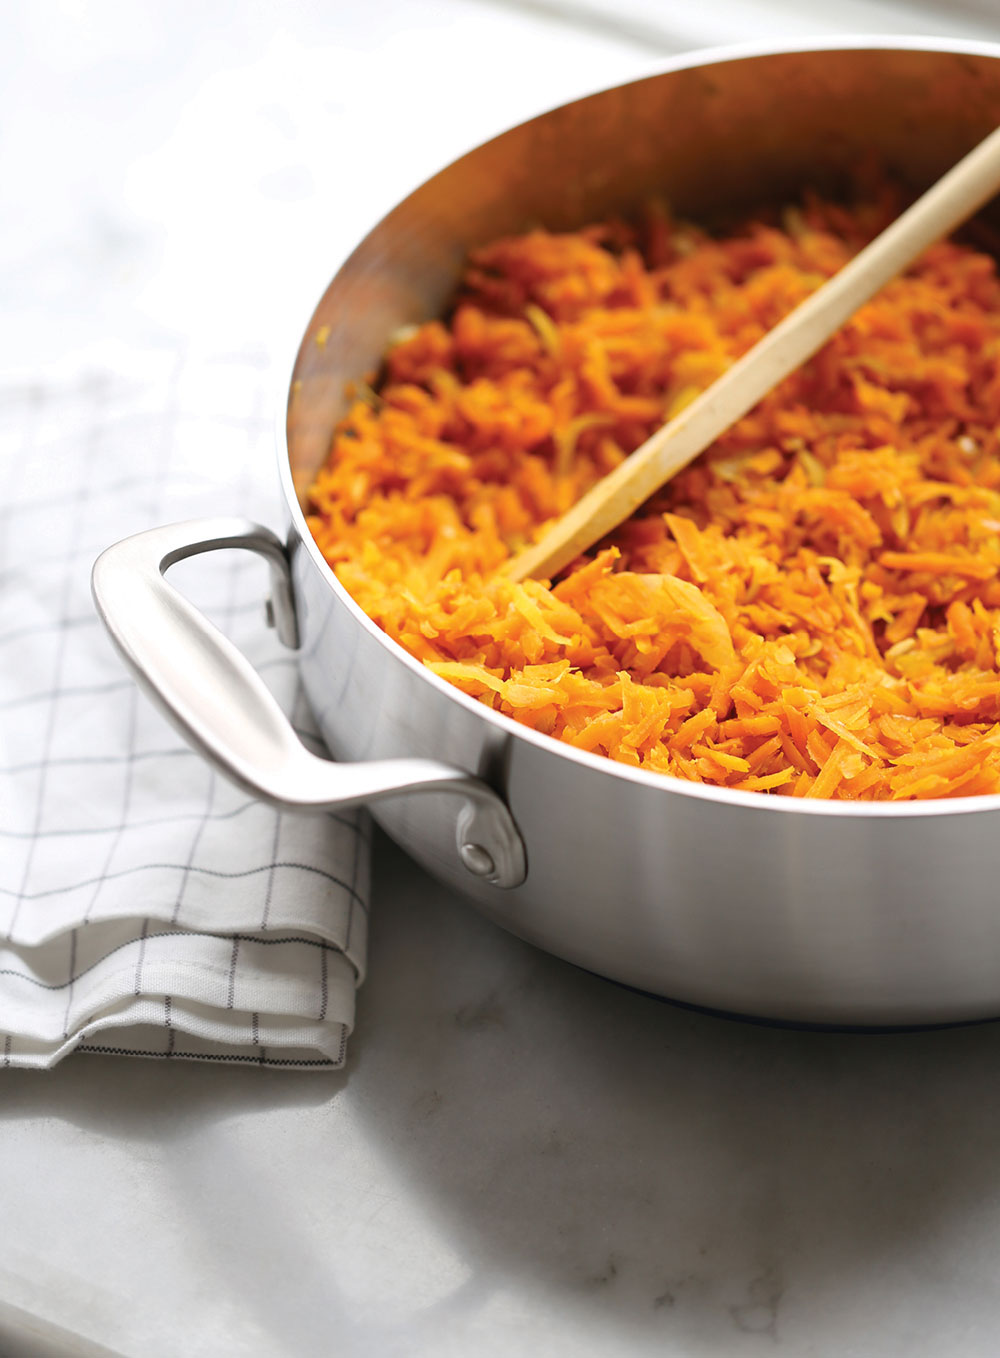 Shredded-Carrot-Fish-Casserole-3